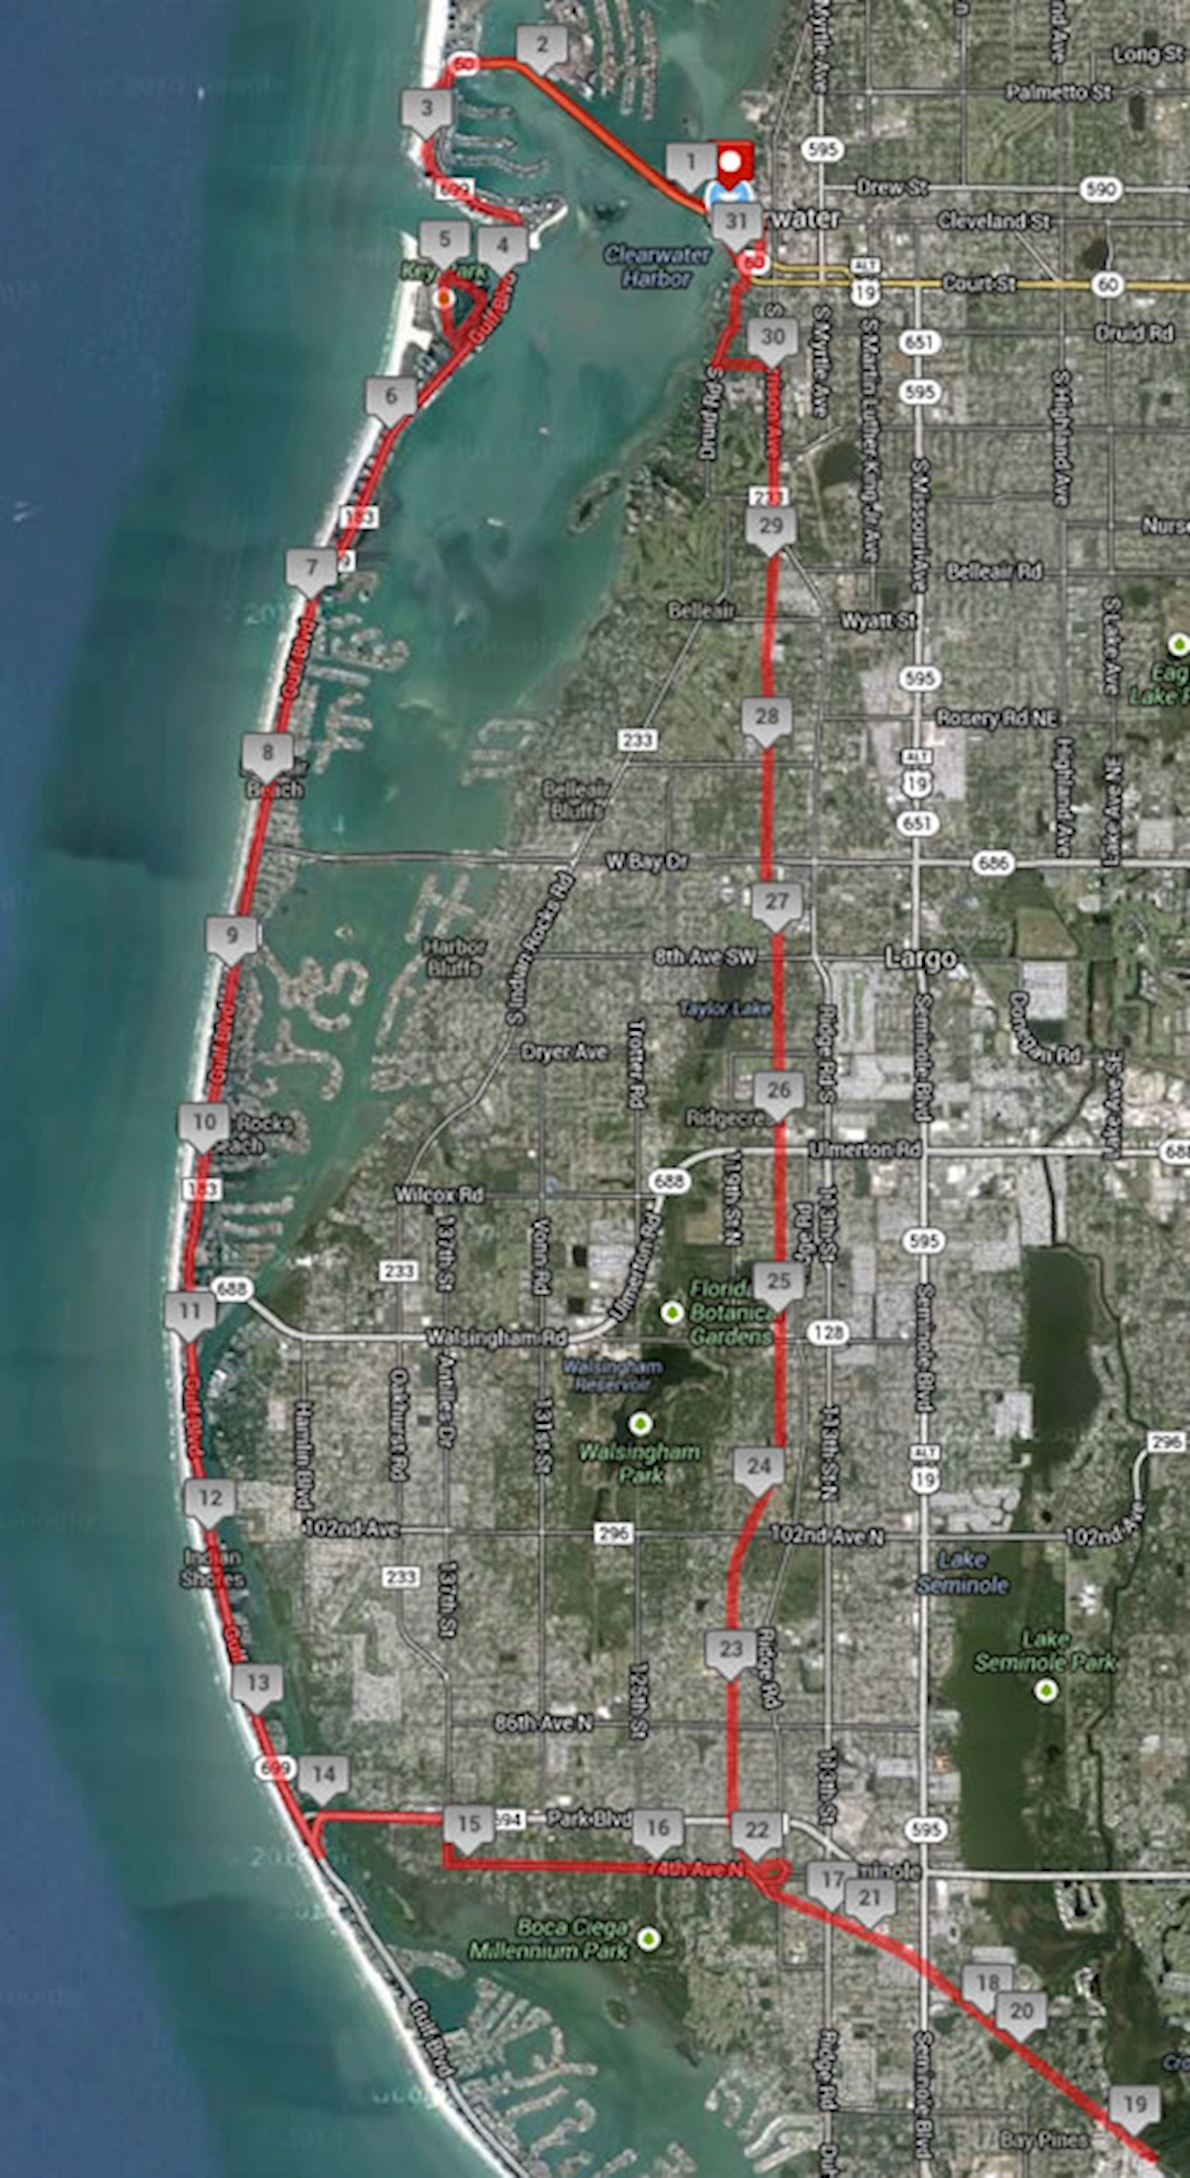 Clearwater Distance Classic Route Map